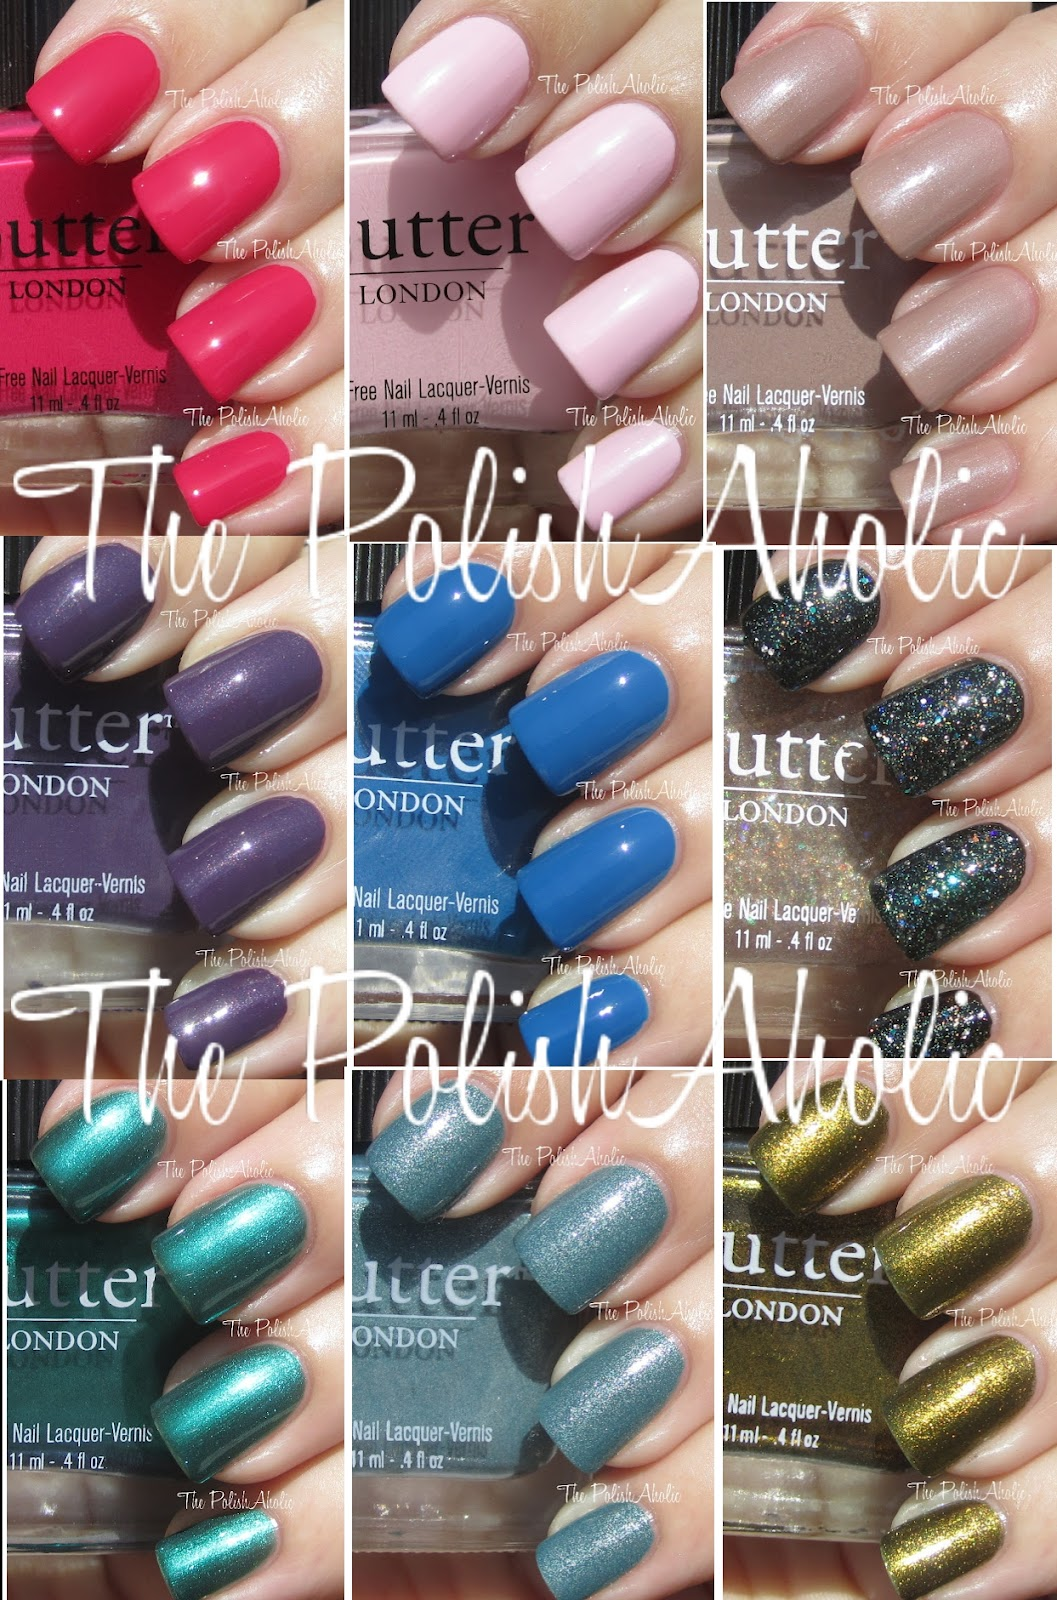 Butter Brand Nail Polish Reviews Hession Hairdressing